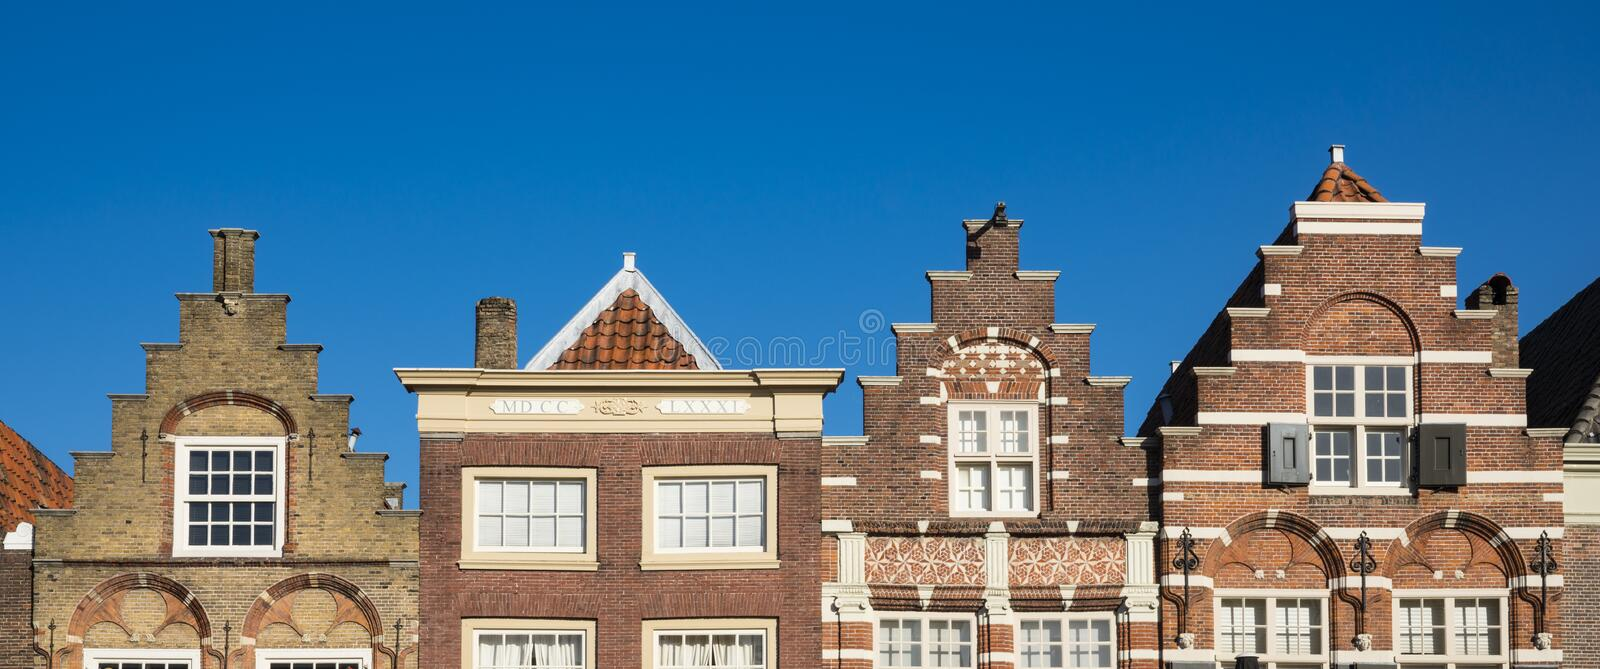 Stepped gable Houses in Nieuwstraat. Dordrecht. The Netherlands. Banner detail of typical Dutch stepped gable houses in Nieuwstraat. Dordrecht. The Netherlands stock photography